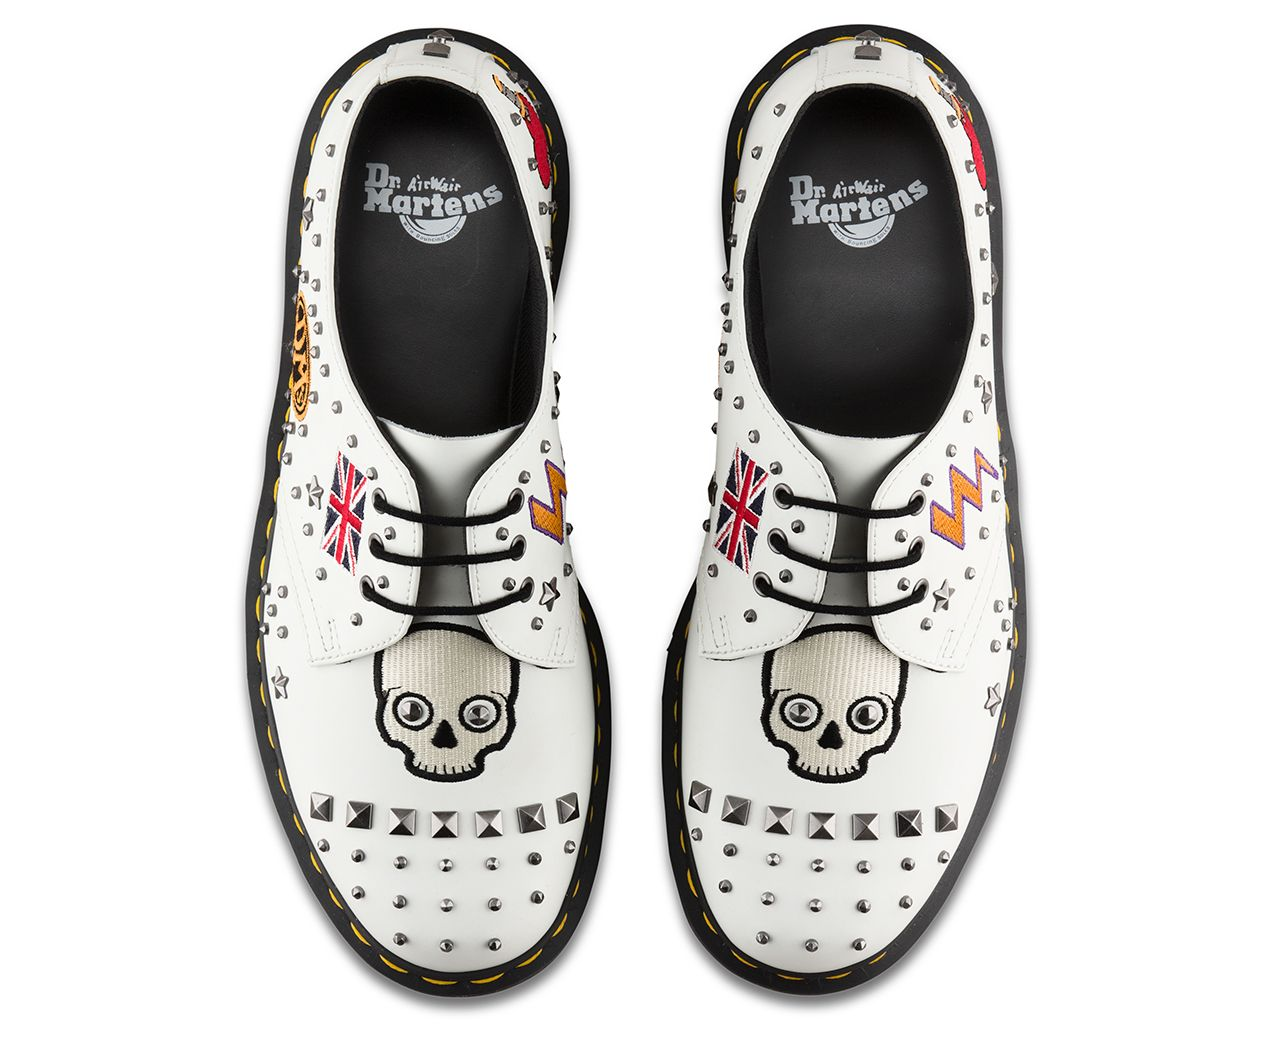 745ae58453eb4 Dr martens 1461 rock & roll in 2019 | Whut up Doc | Rockabilly shoes ...